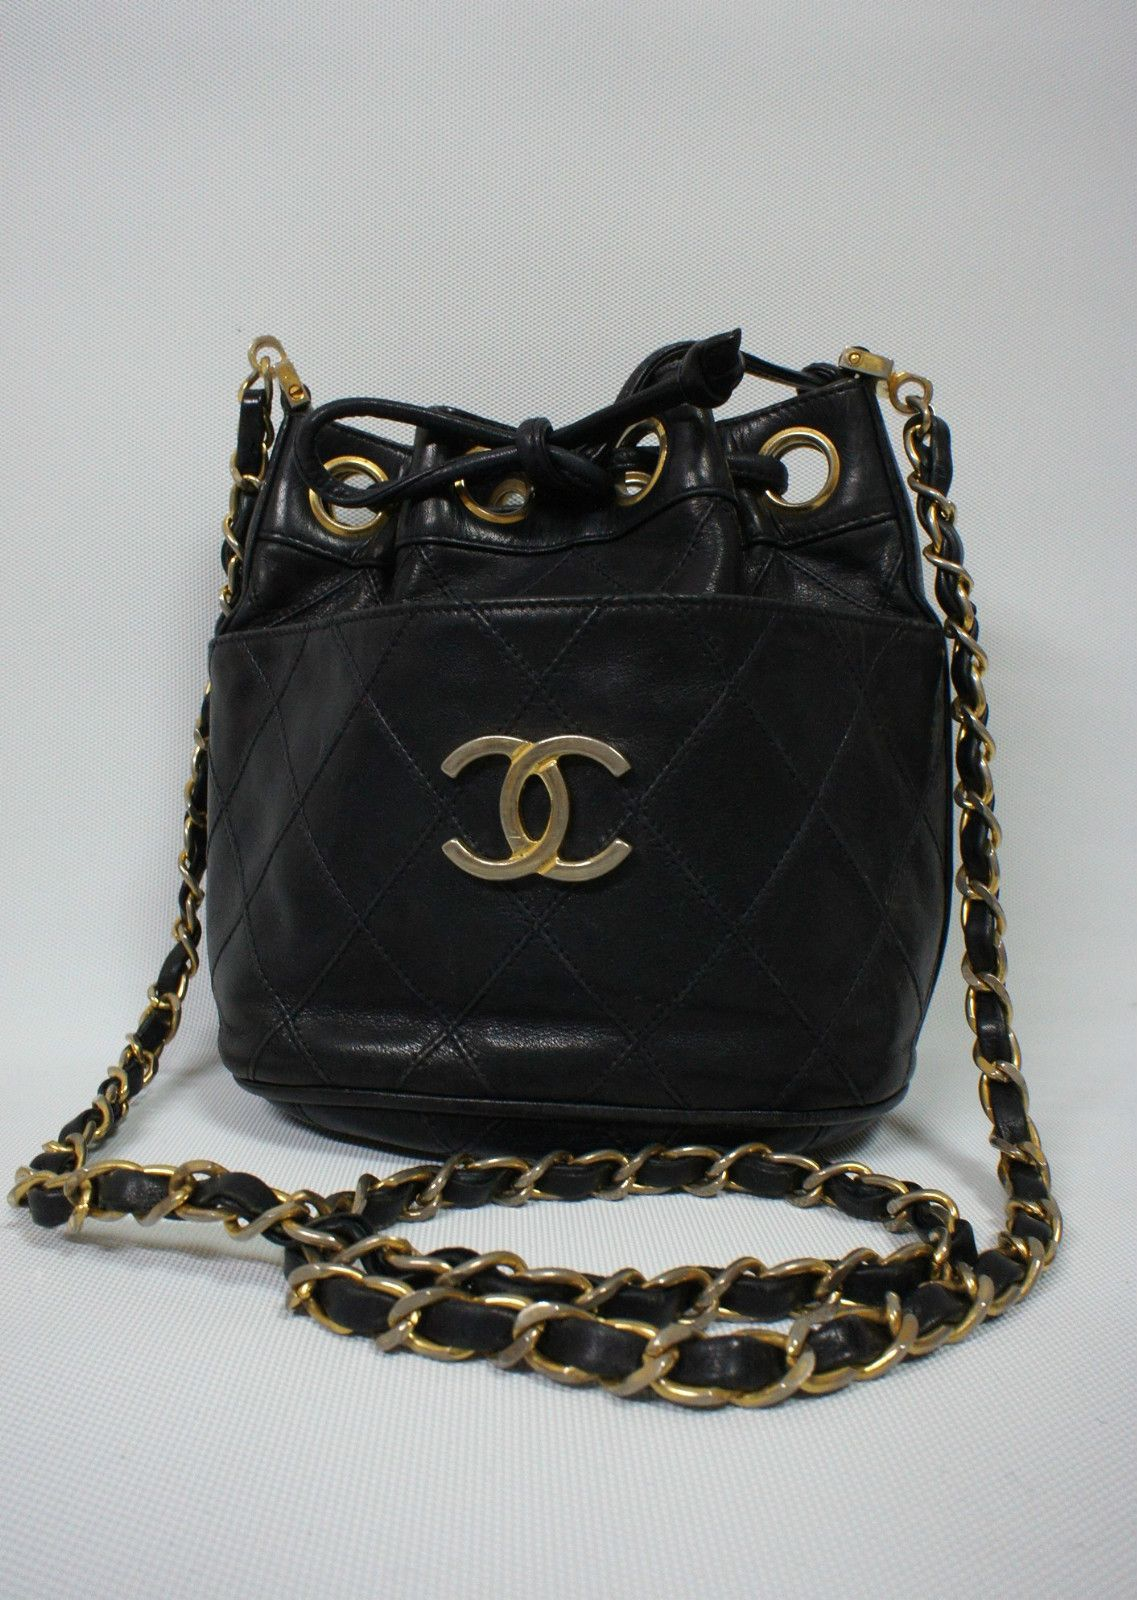 Chanel Vintage Velvet Pearl Gripoix Crossbody Evening Bag Lovely Fabric And Styling By Coco Chanel Chanel Handbags Evening Bags Vintage Chanel